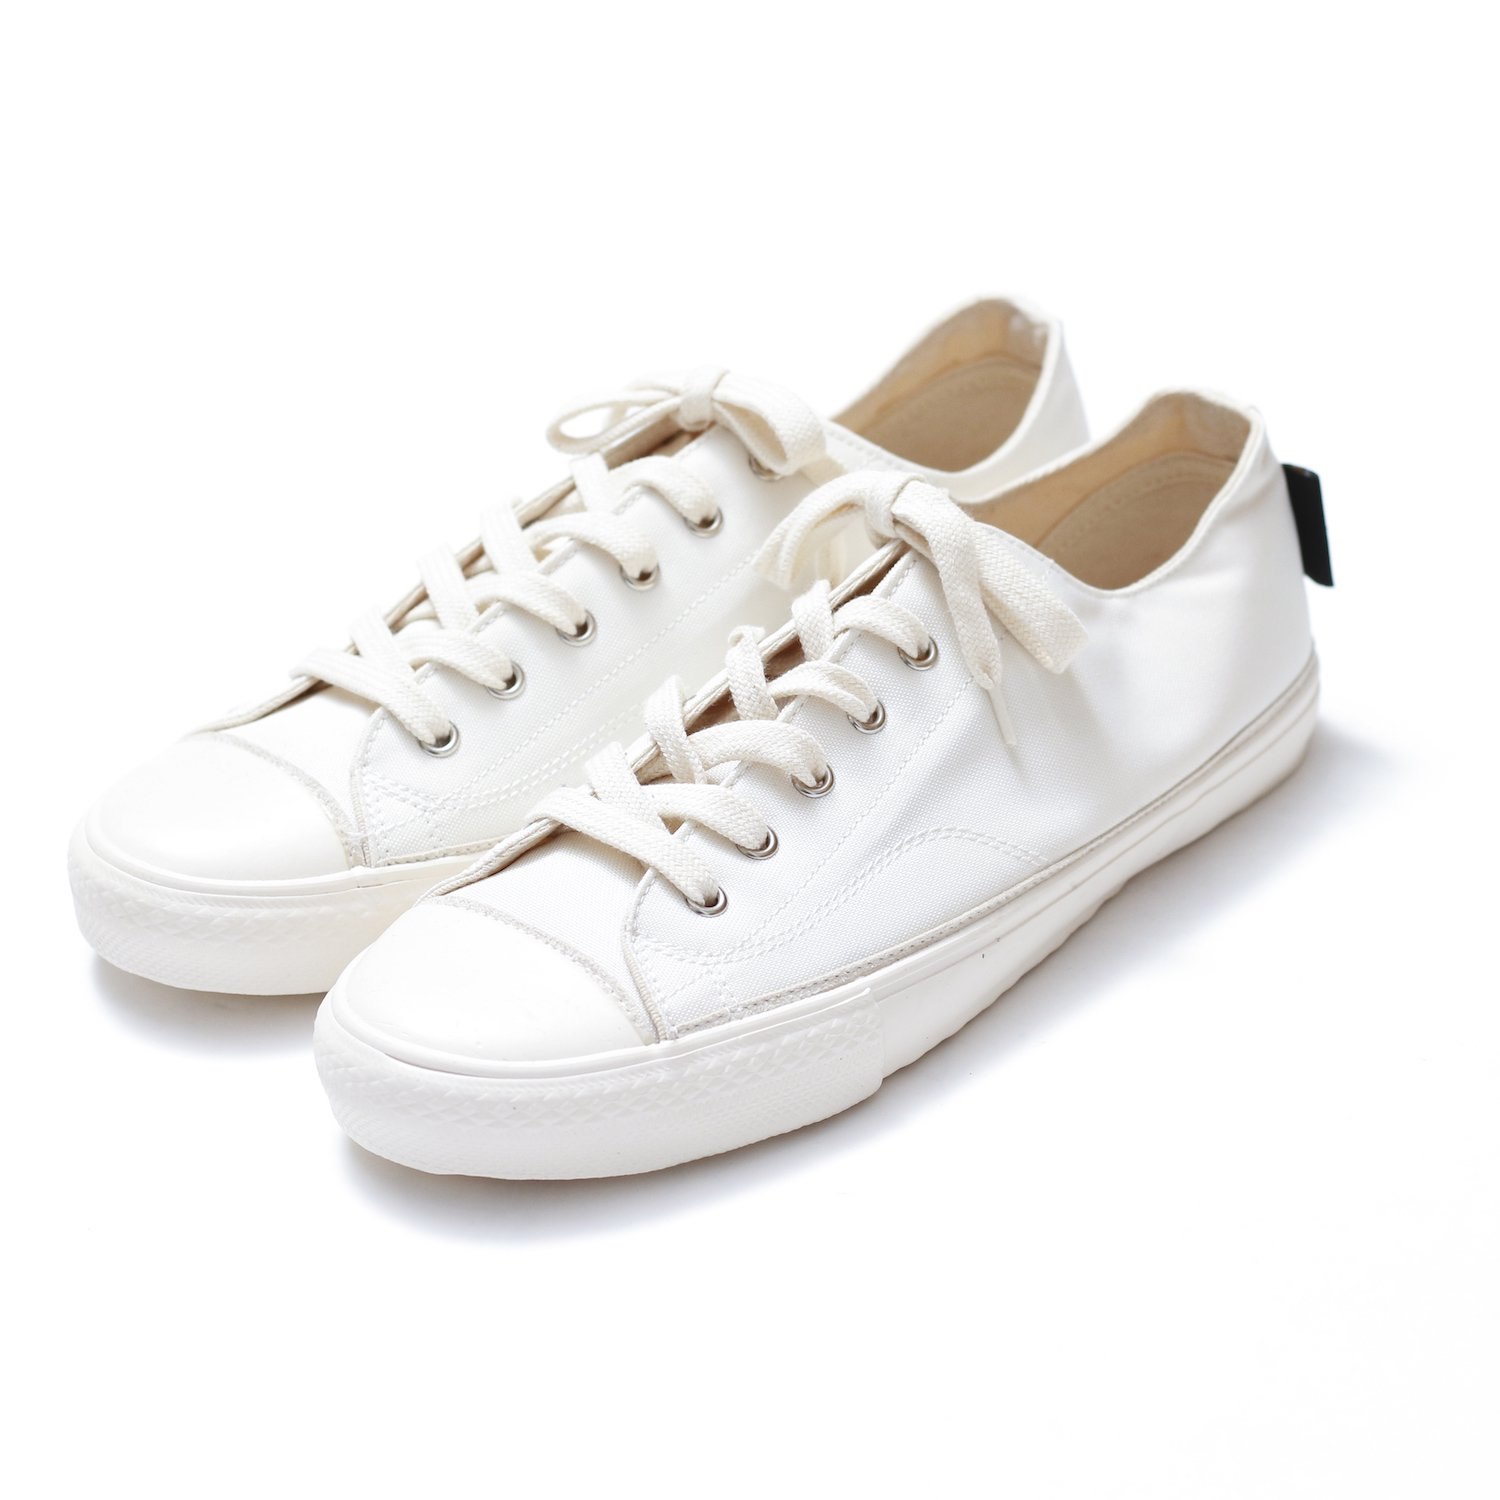 <img class='new_mark_img1' src='https://img.shop-pro.jp/img/new/icons8.gif' style='border:none;display:inline;margin:0px;padding:0px;width:auto;' />J&S FRANKLIN EQUIPMENT / BRITISH ARMY TRAINERS 2